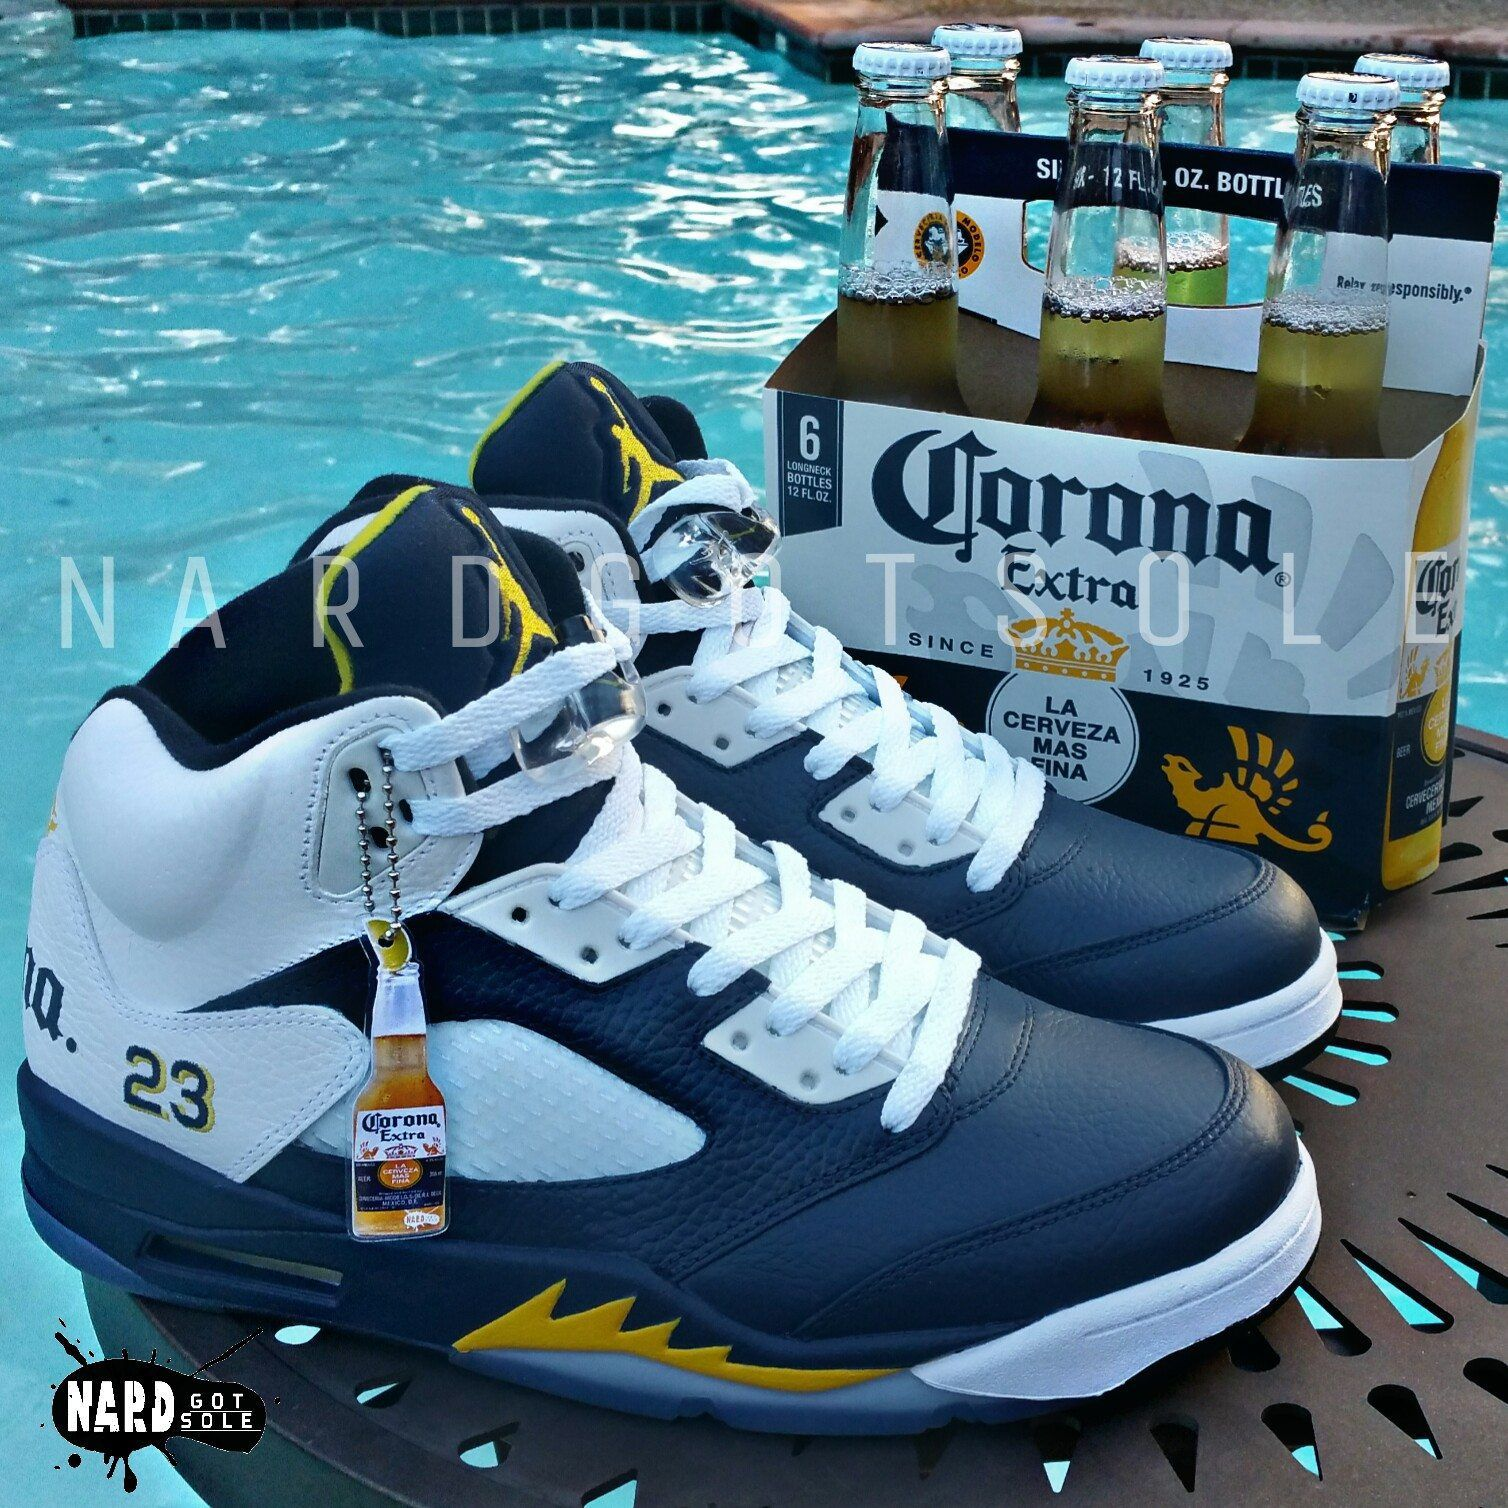 newest 0c7a7 44a06 Custom Corona 5   Sneakers in 2019   Jordans, Air jordans, Sneakers nike